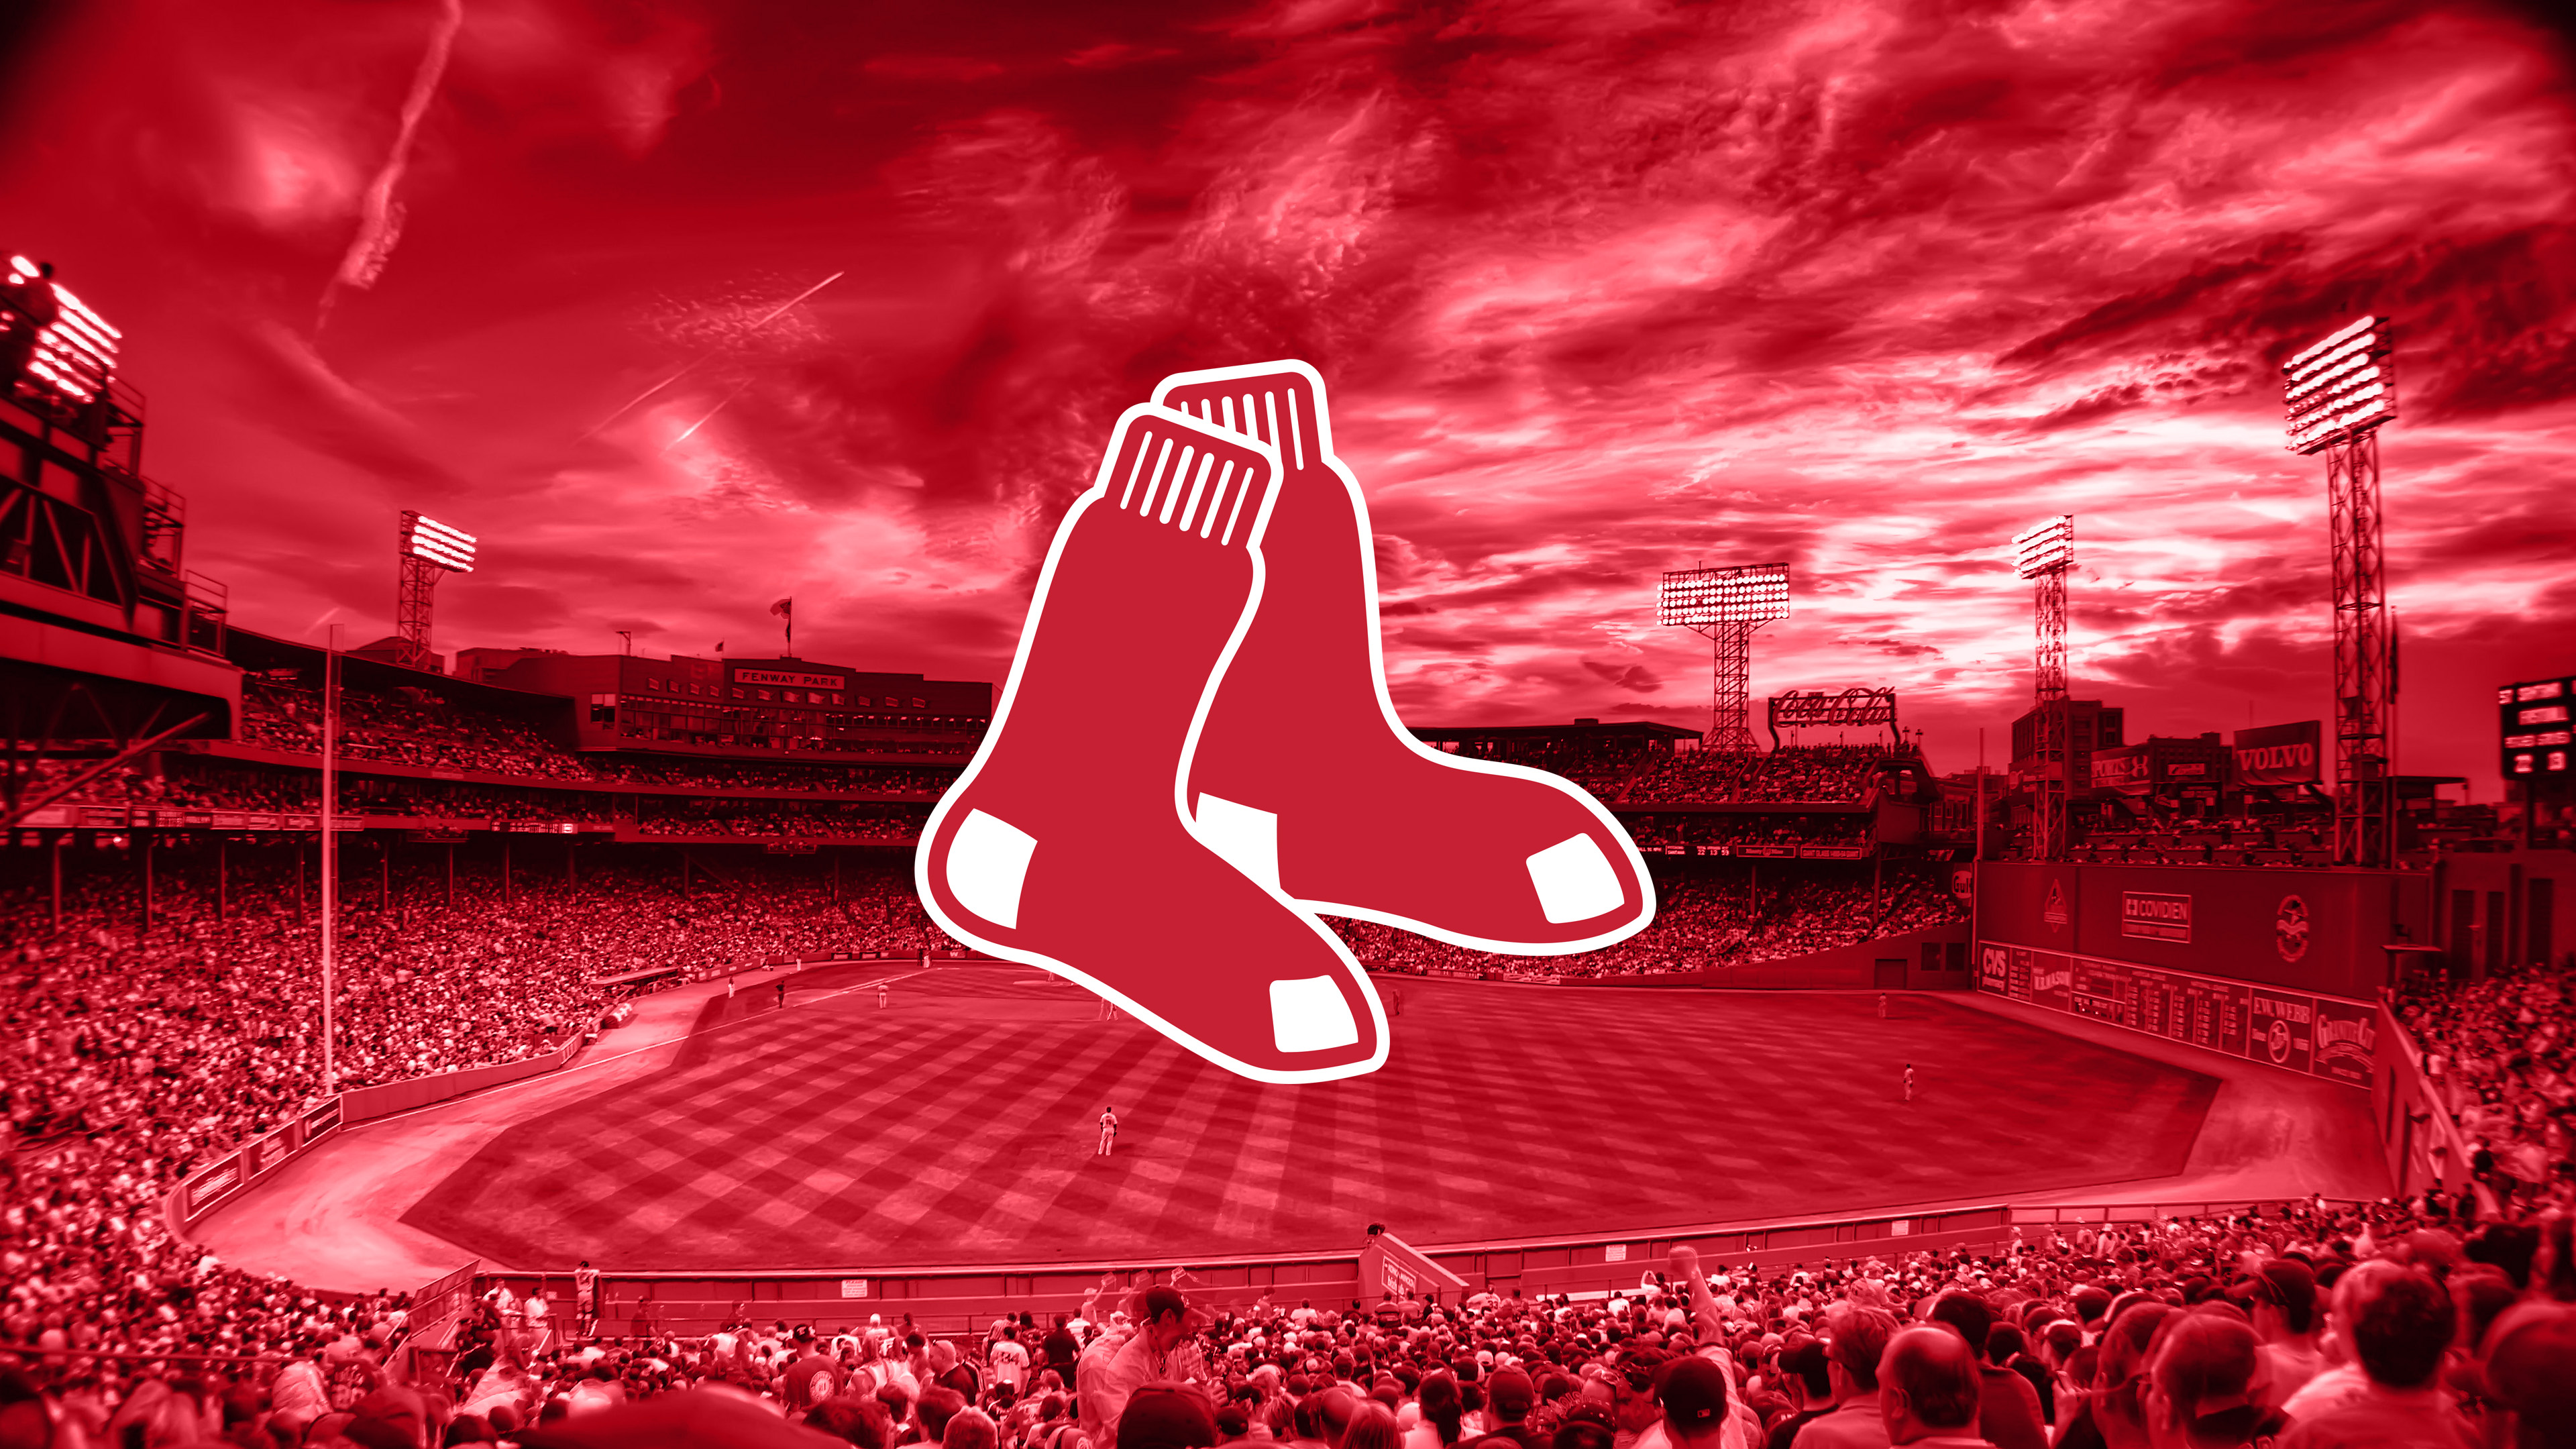 3840x2160 - Boston Red Sox Wallpaper Screensavers 39